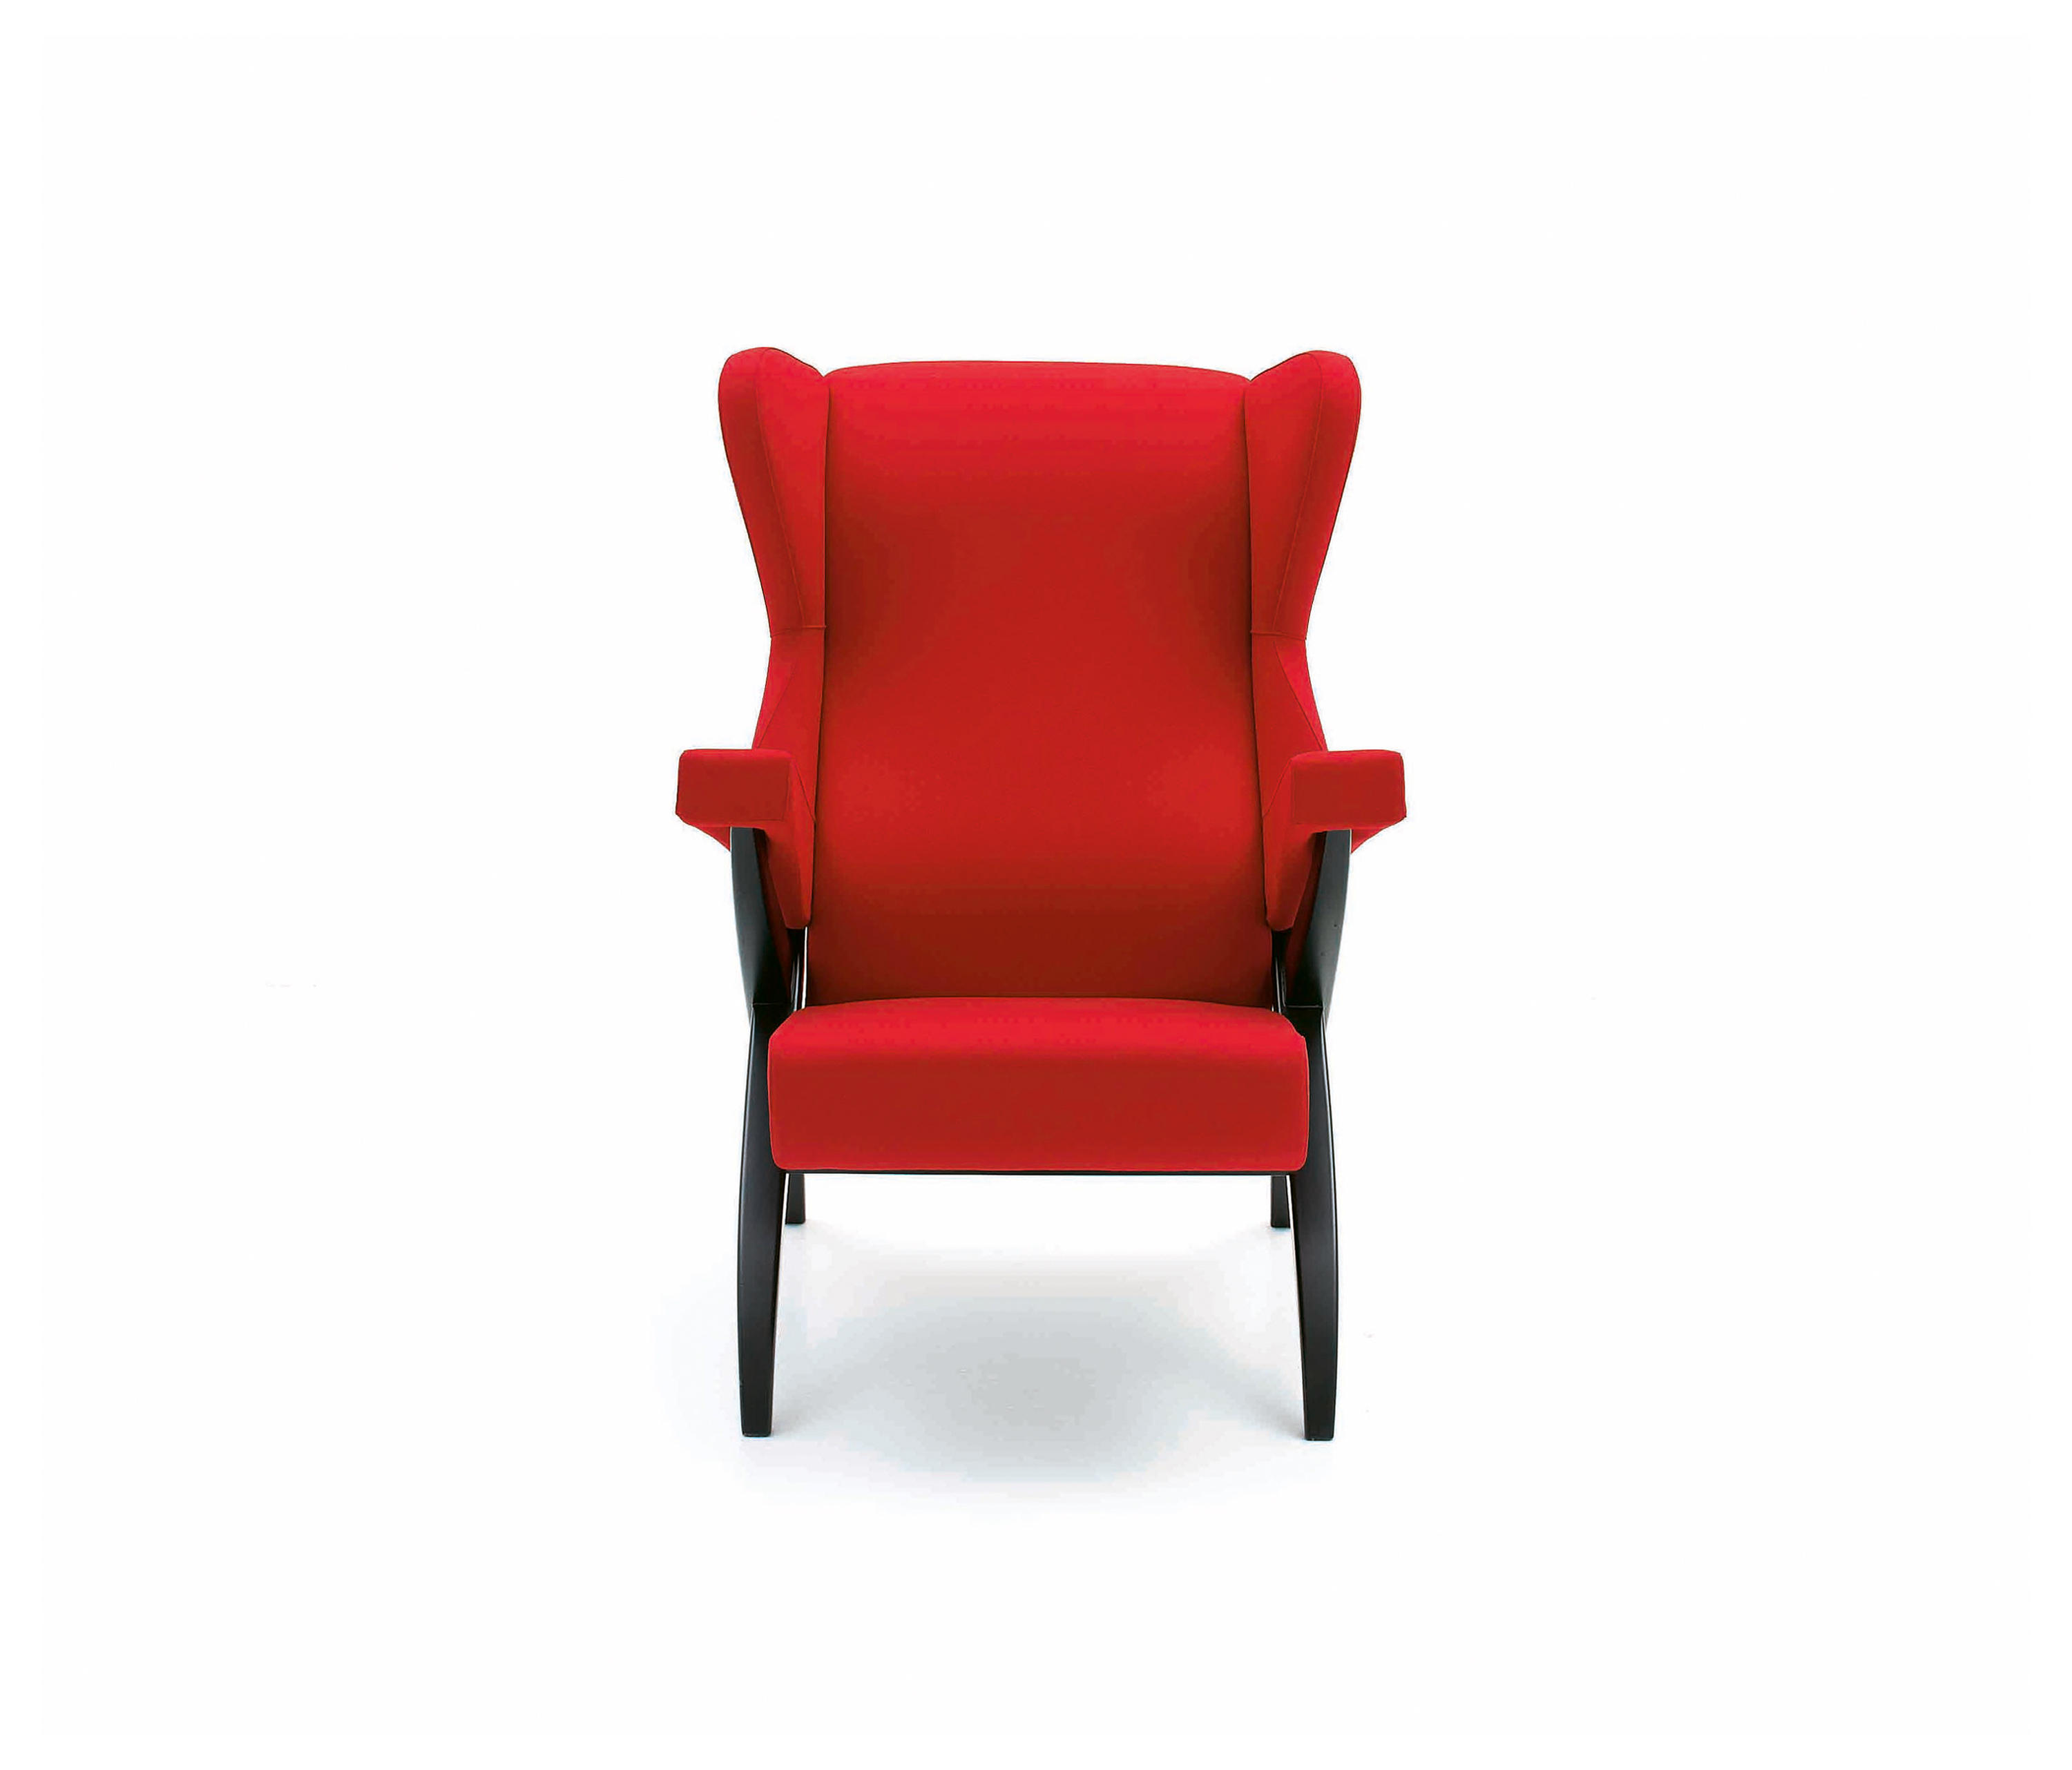 Lounge sessel retro  FIORENZA ARMCHAIR - Lounge chairs from ARFLEX | Architonic